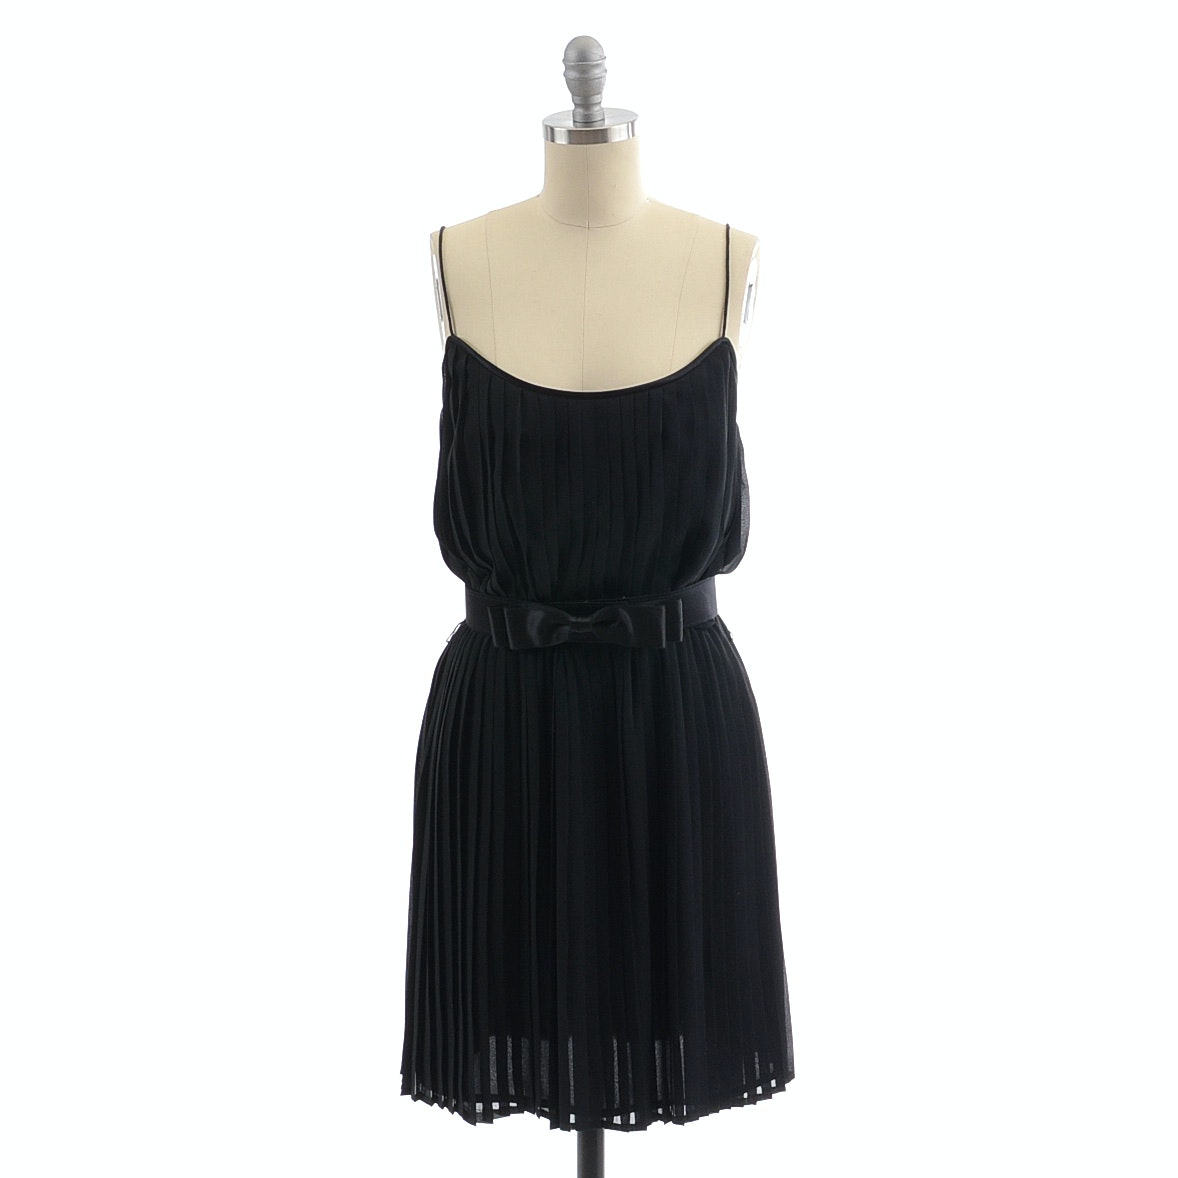 Ann Taylor Pleated Black Silk Chiffon Sleeveless Cocktail Dress Trimmed in Satin with Matching Belt